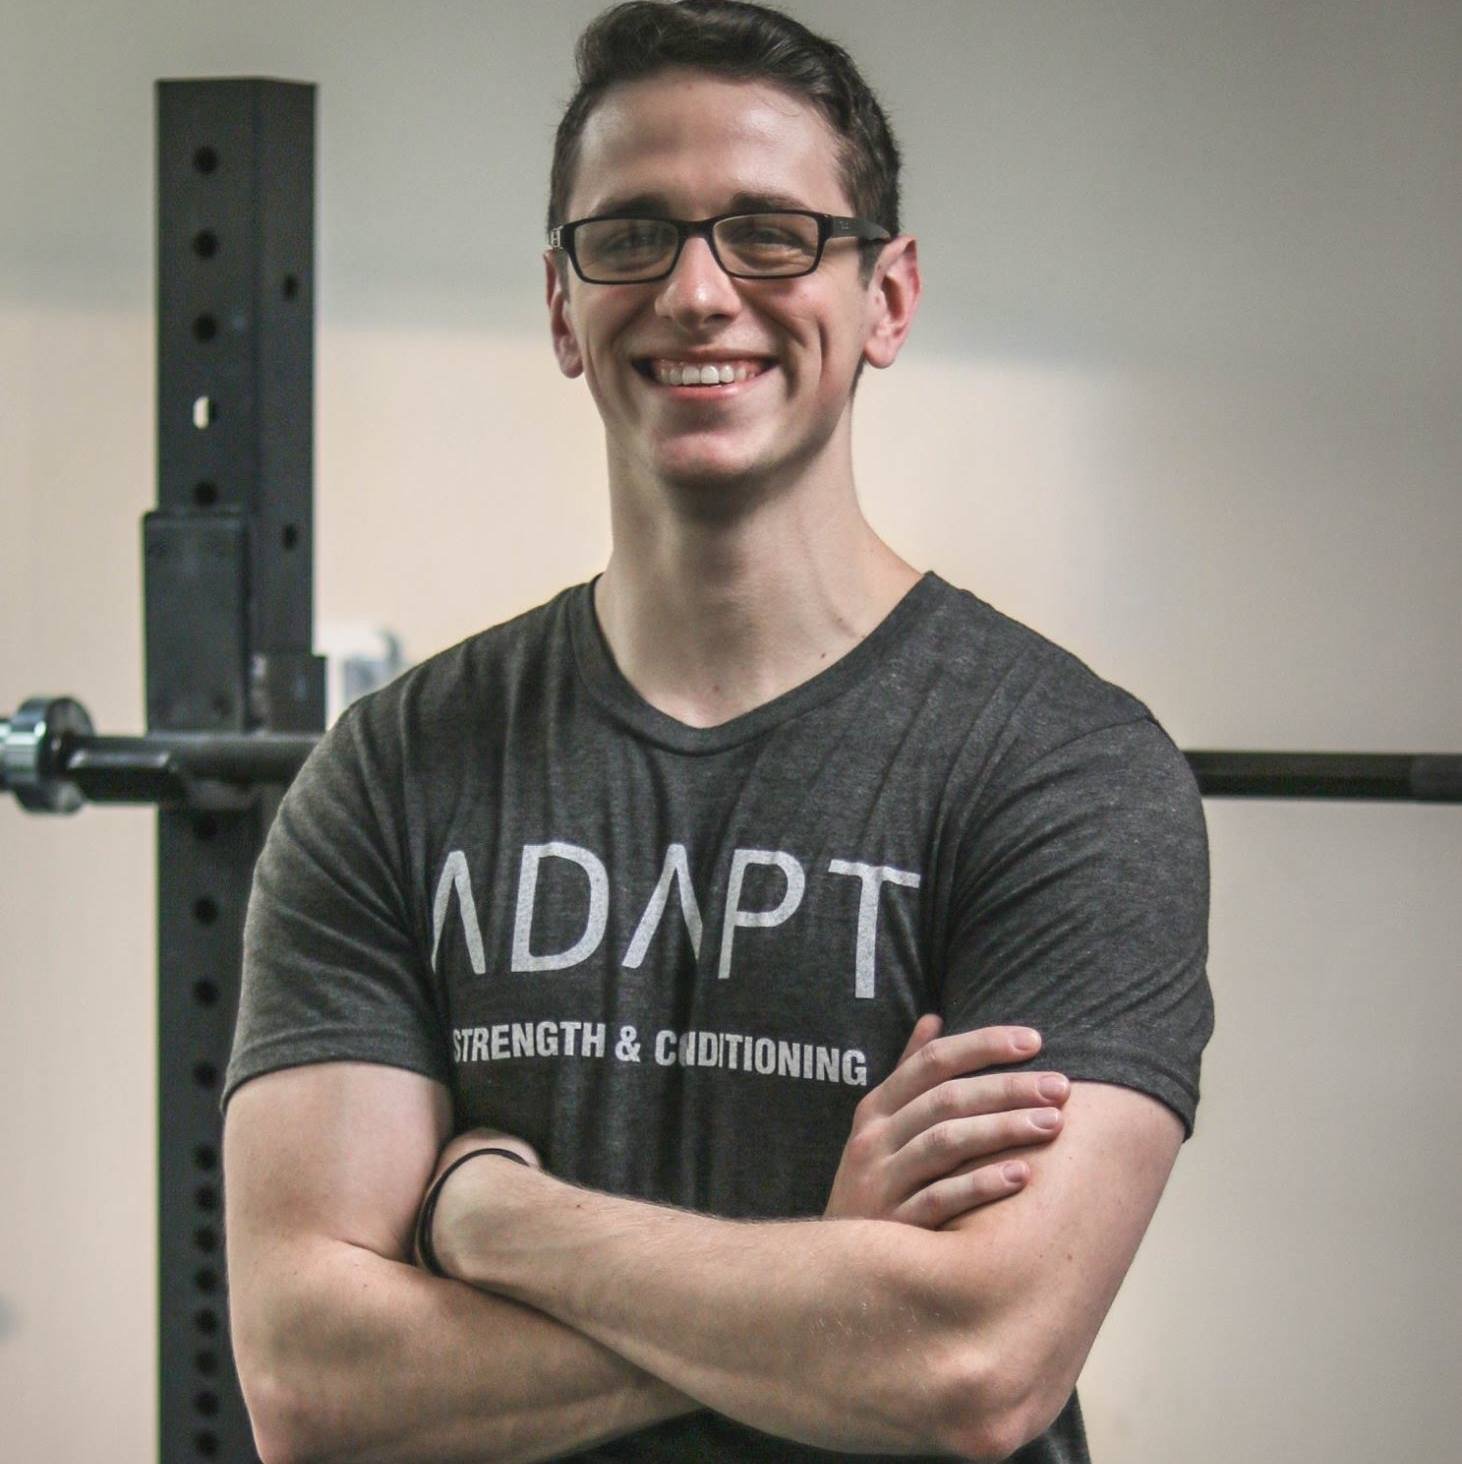 Lucas Ammann - Personal Trainer / NeuFit PractitionerStudio Manager - Adapt Dallas